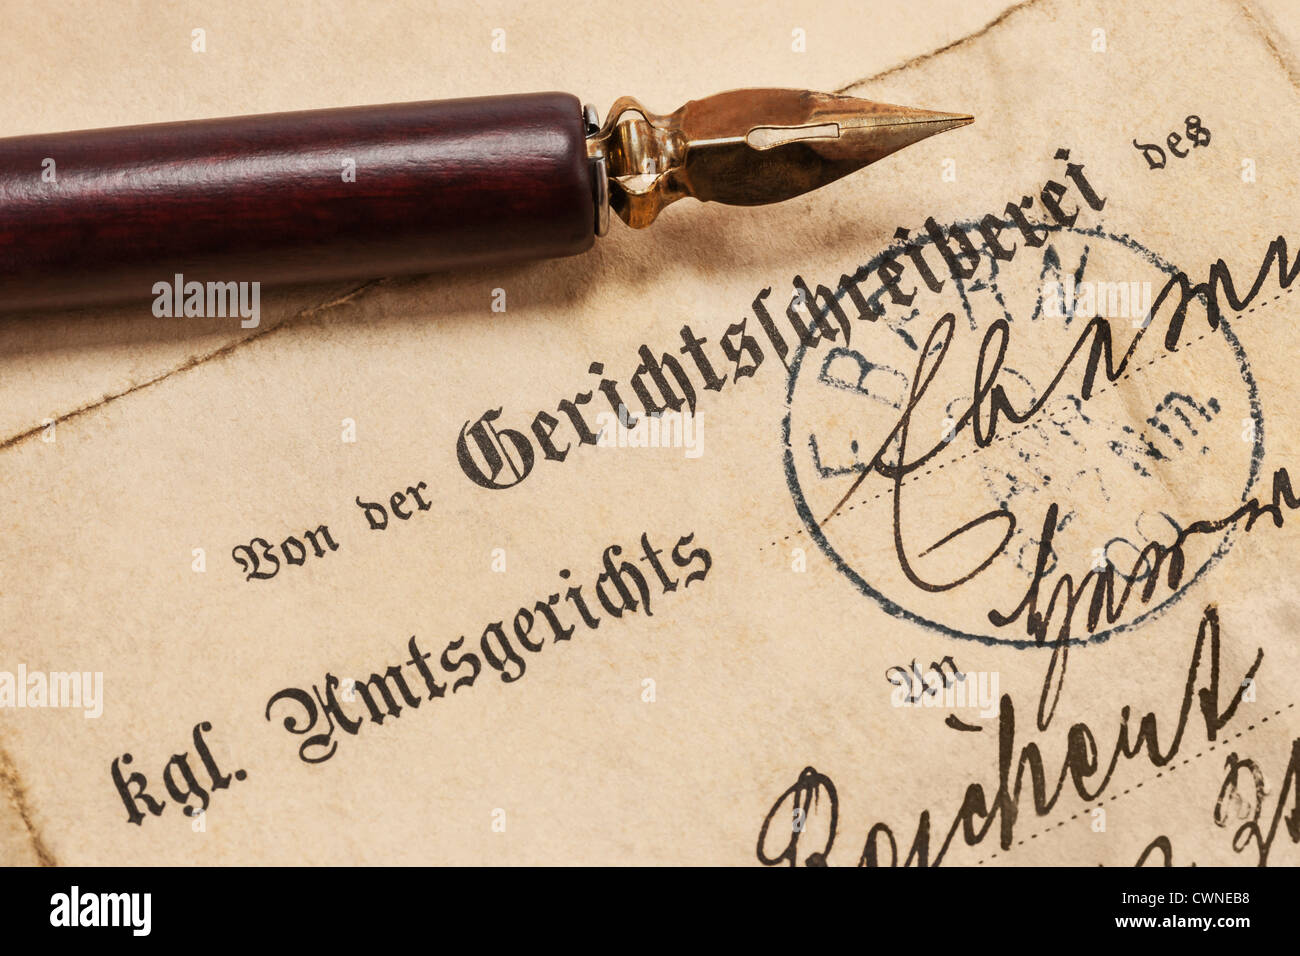 Old letter from an German royal local court from the year 1900, a fountain pen is alongside - Stock Image